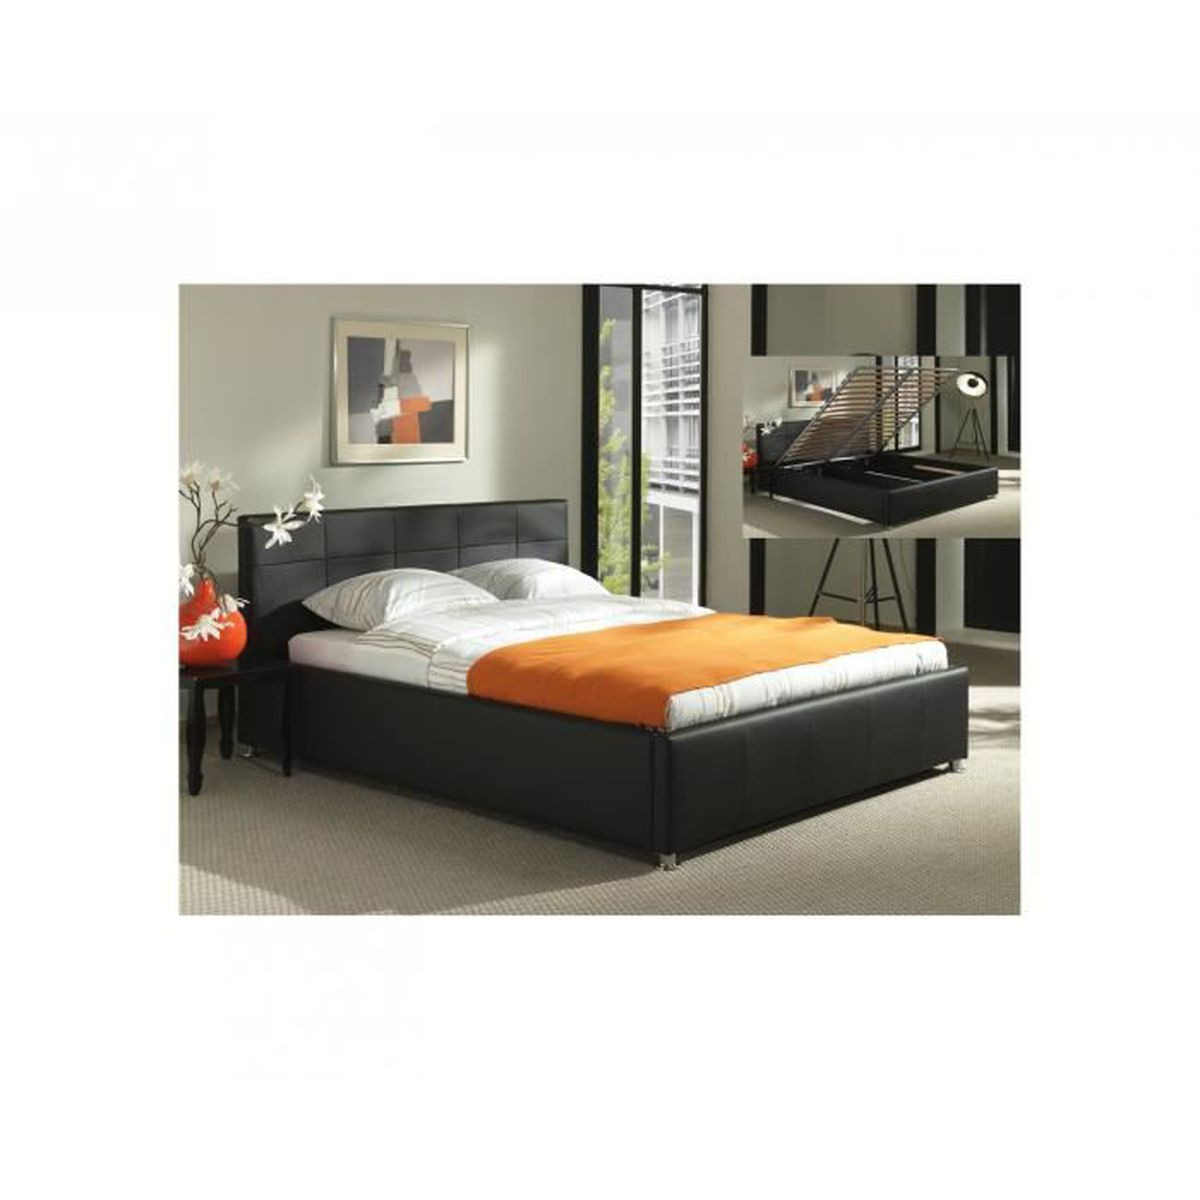 lit coffre noir sommier relevable 180x200 cm flora achat vente lit evolutif lit coffre. Black Bedroom Furniture Sets. Home Design Ideas